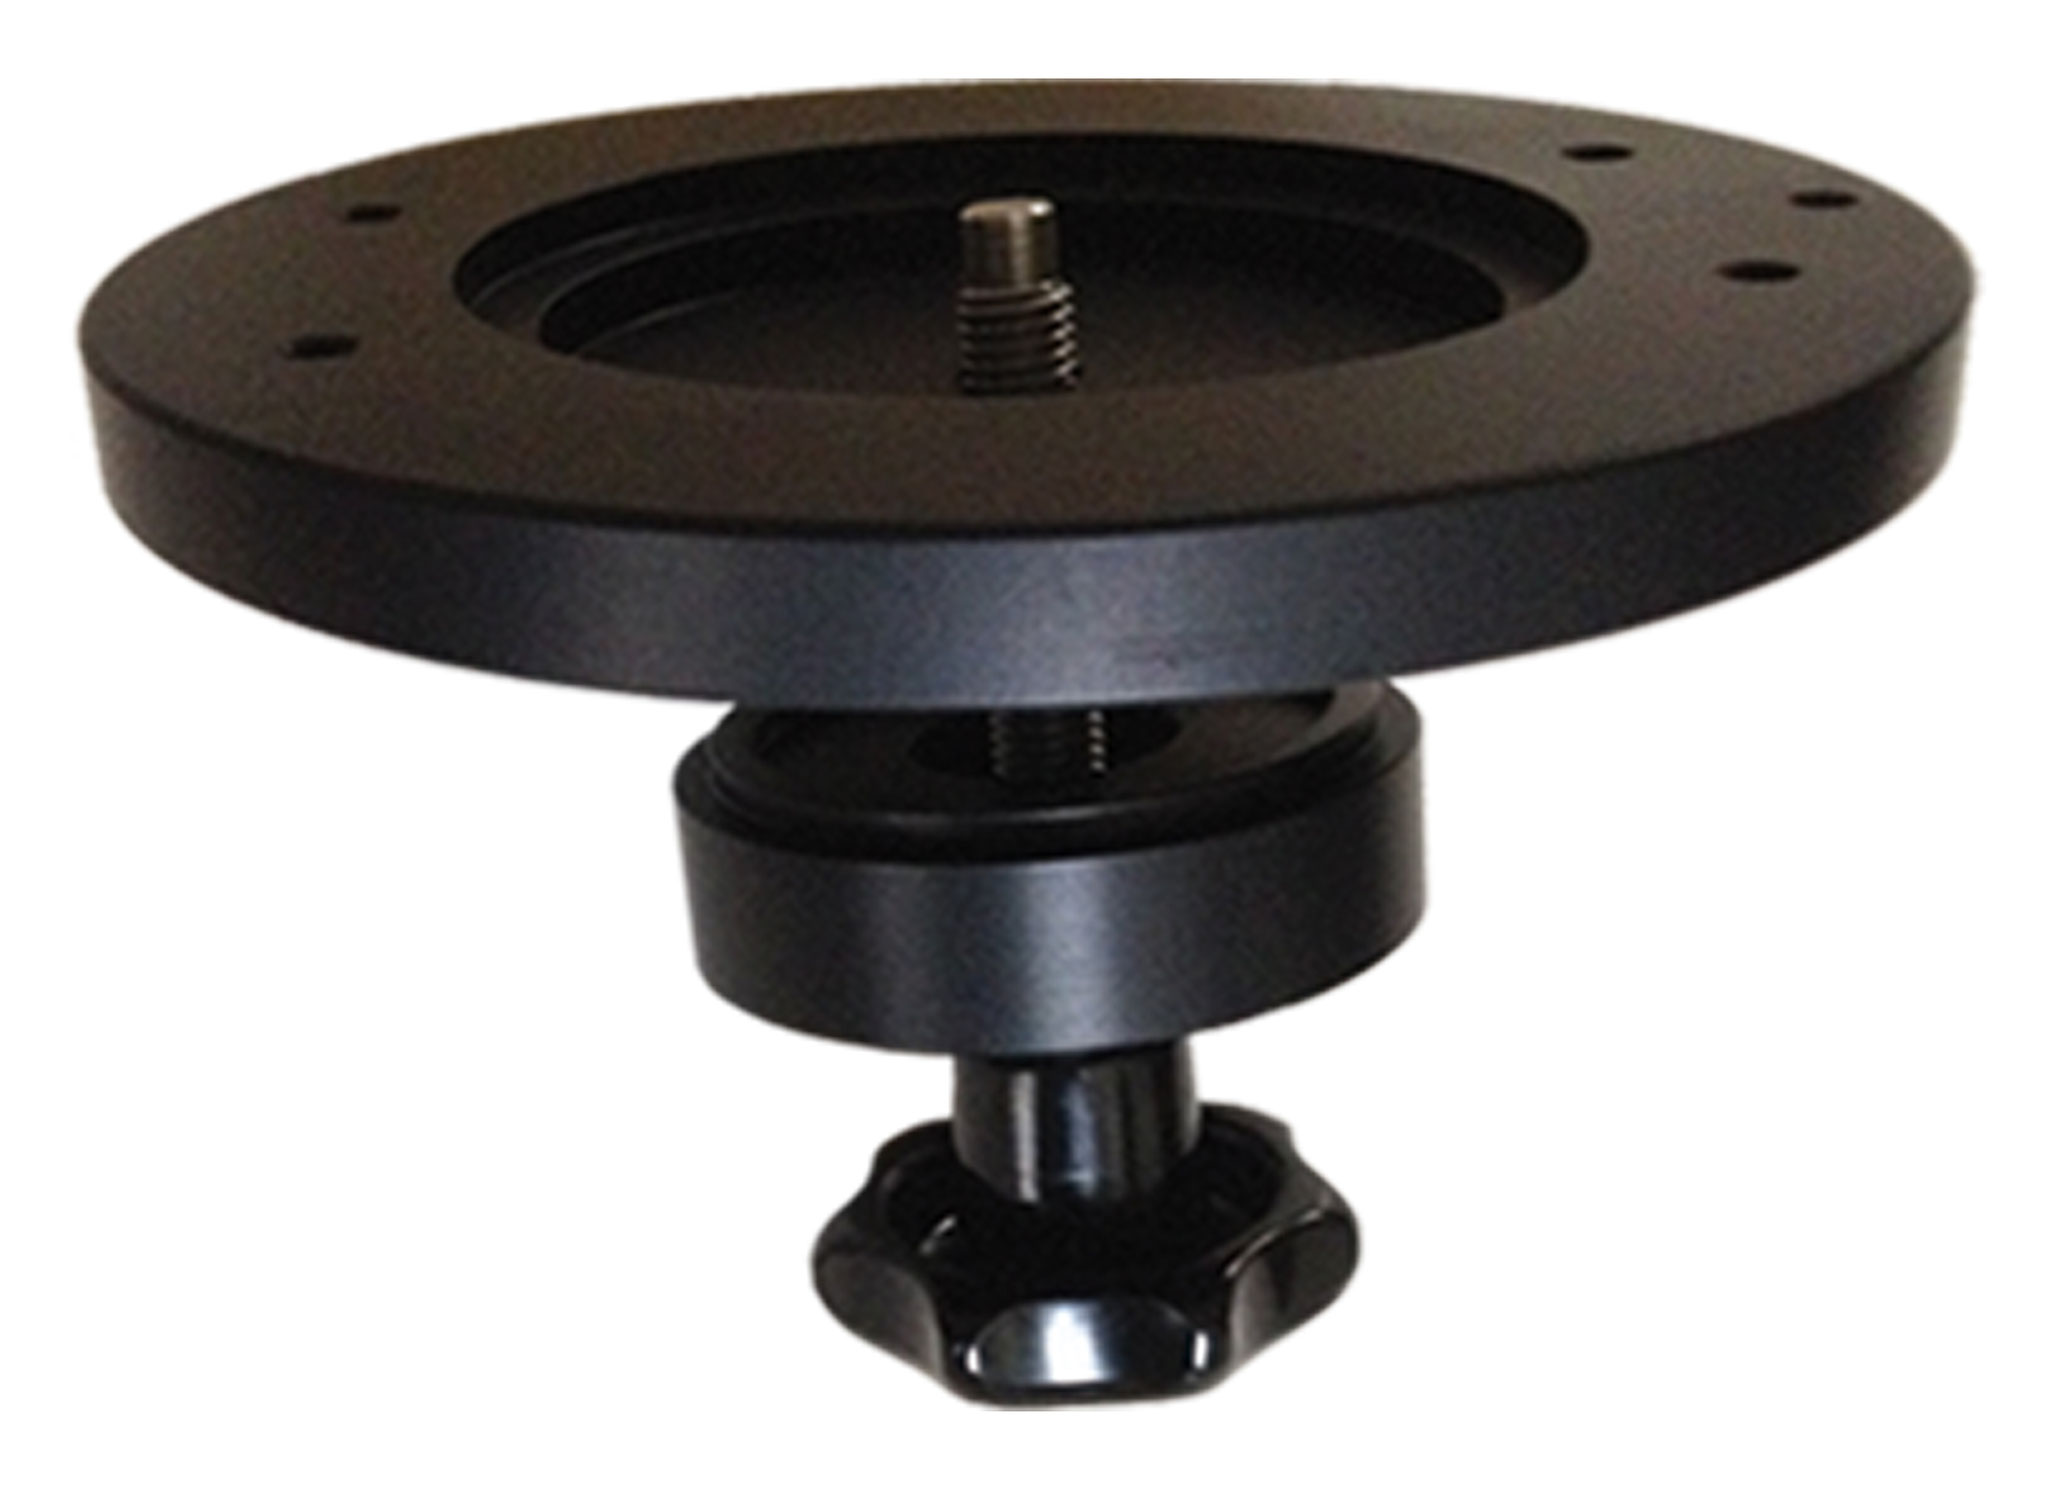 Mitchell/150mm Bowl Adapter Plate for center mounting of Tango base track onto Mitchell/150mm tripods